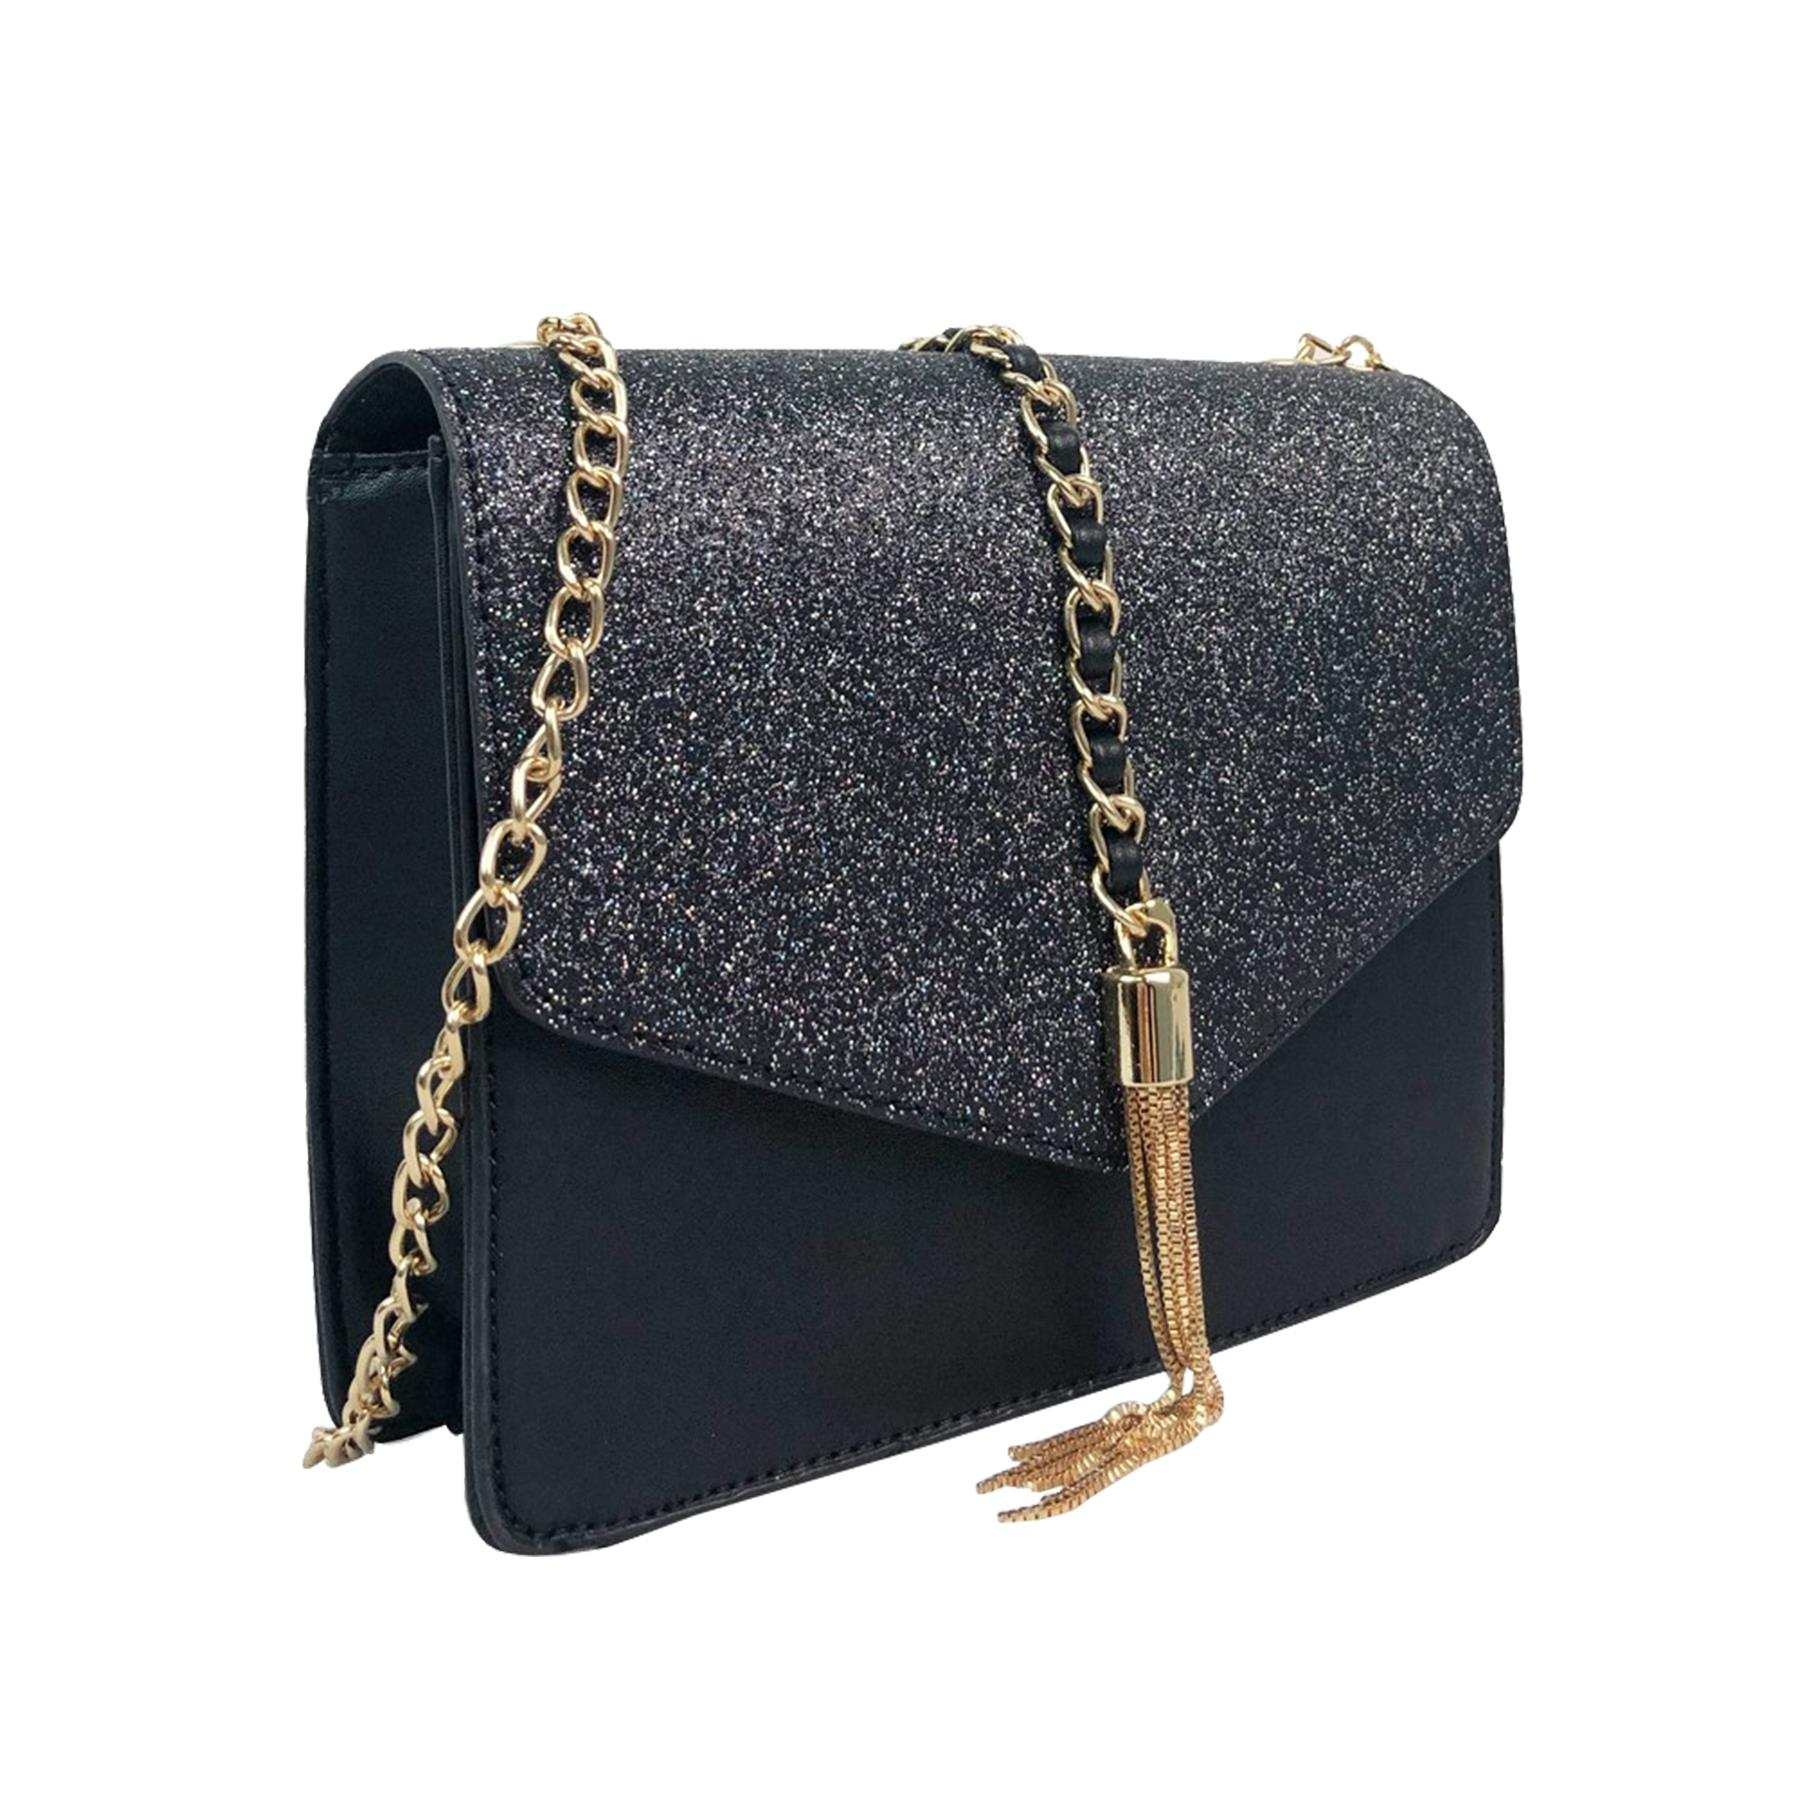 New-Glitter-Chain-Tassel-Decoration-Ladies-Party-Stylish-Clutch-Shoulder-Bags thumbnail 6